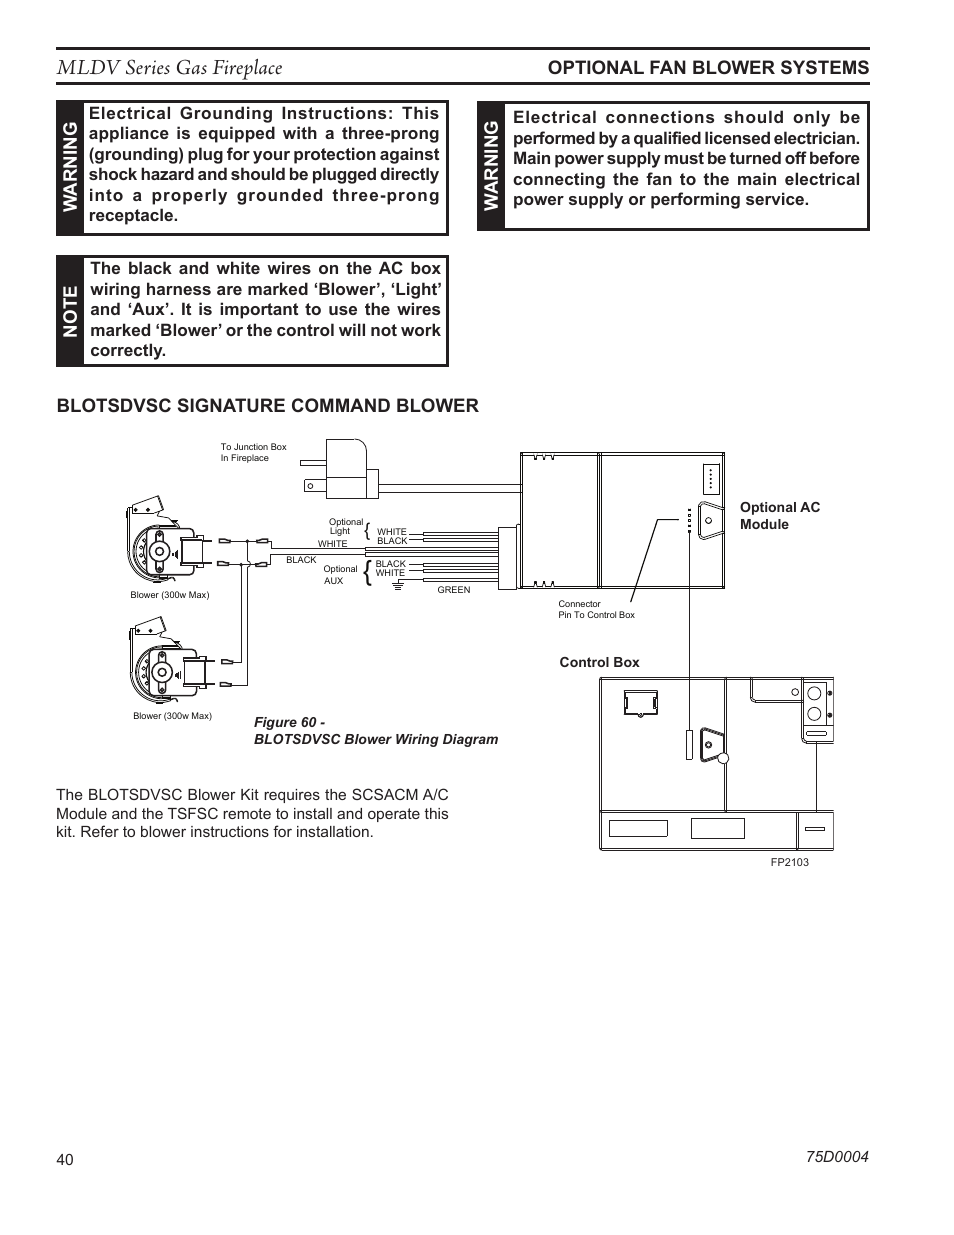 [SCHEMATICS_4NL]  Mldv series gas fireplace, Fp2684 blotsdvsc fan wiring, Warning | Monessen  Hearth DIRECT VENT MLDV500 User Manual | Page 40 / 68 | Original mode | Wiring Diagram For A Gas Fireplace Blower |  | Manuals Directory